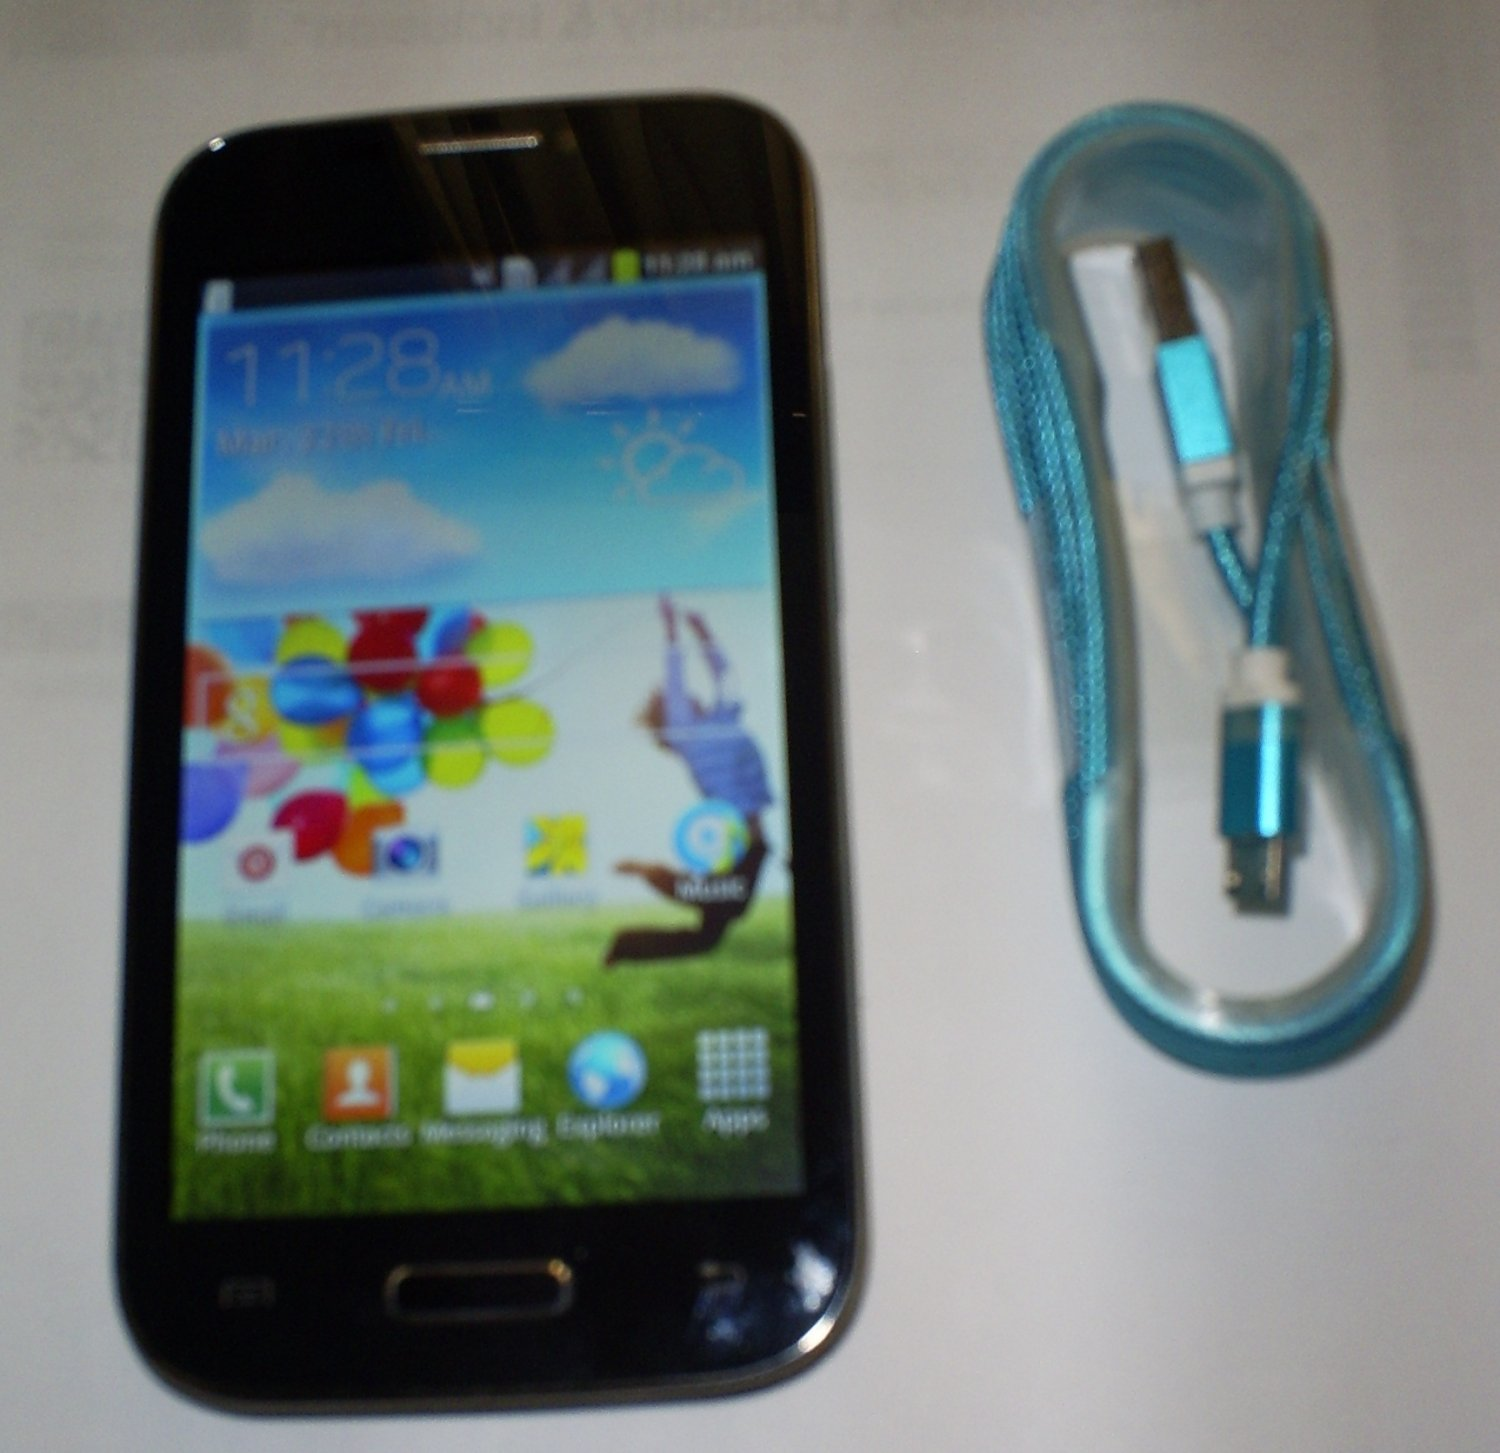 Lightahead LA9500 Dual SIM (Unlocked) Smartphone with USB cable